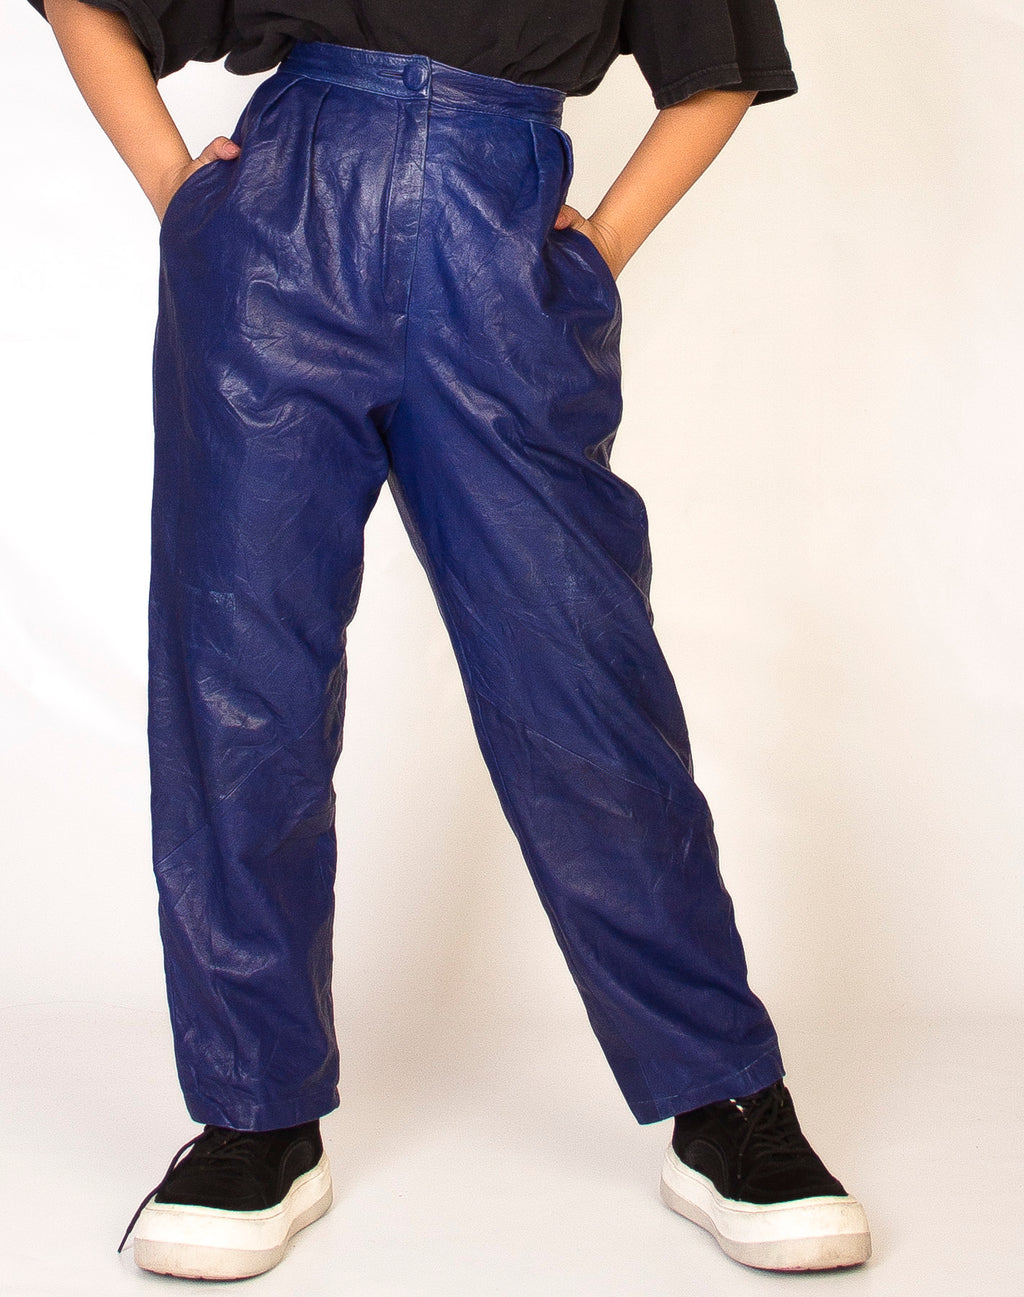 ROYAL BLUE LEATHER TROUSERS